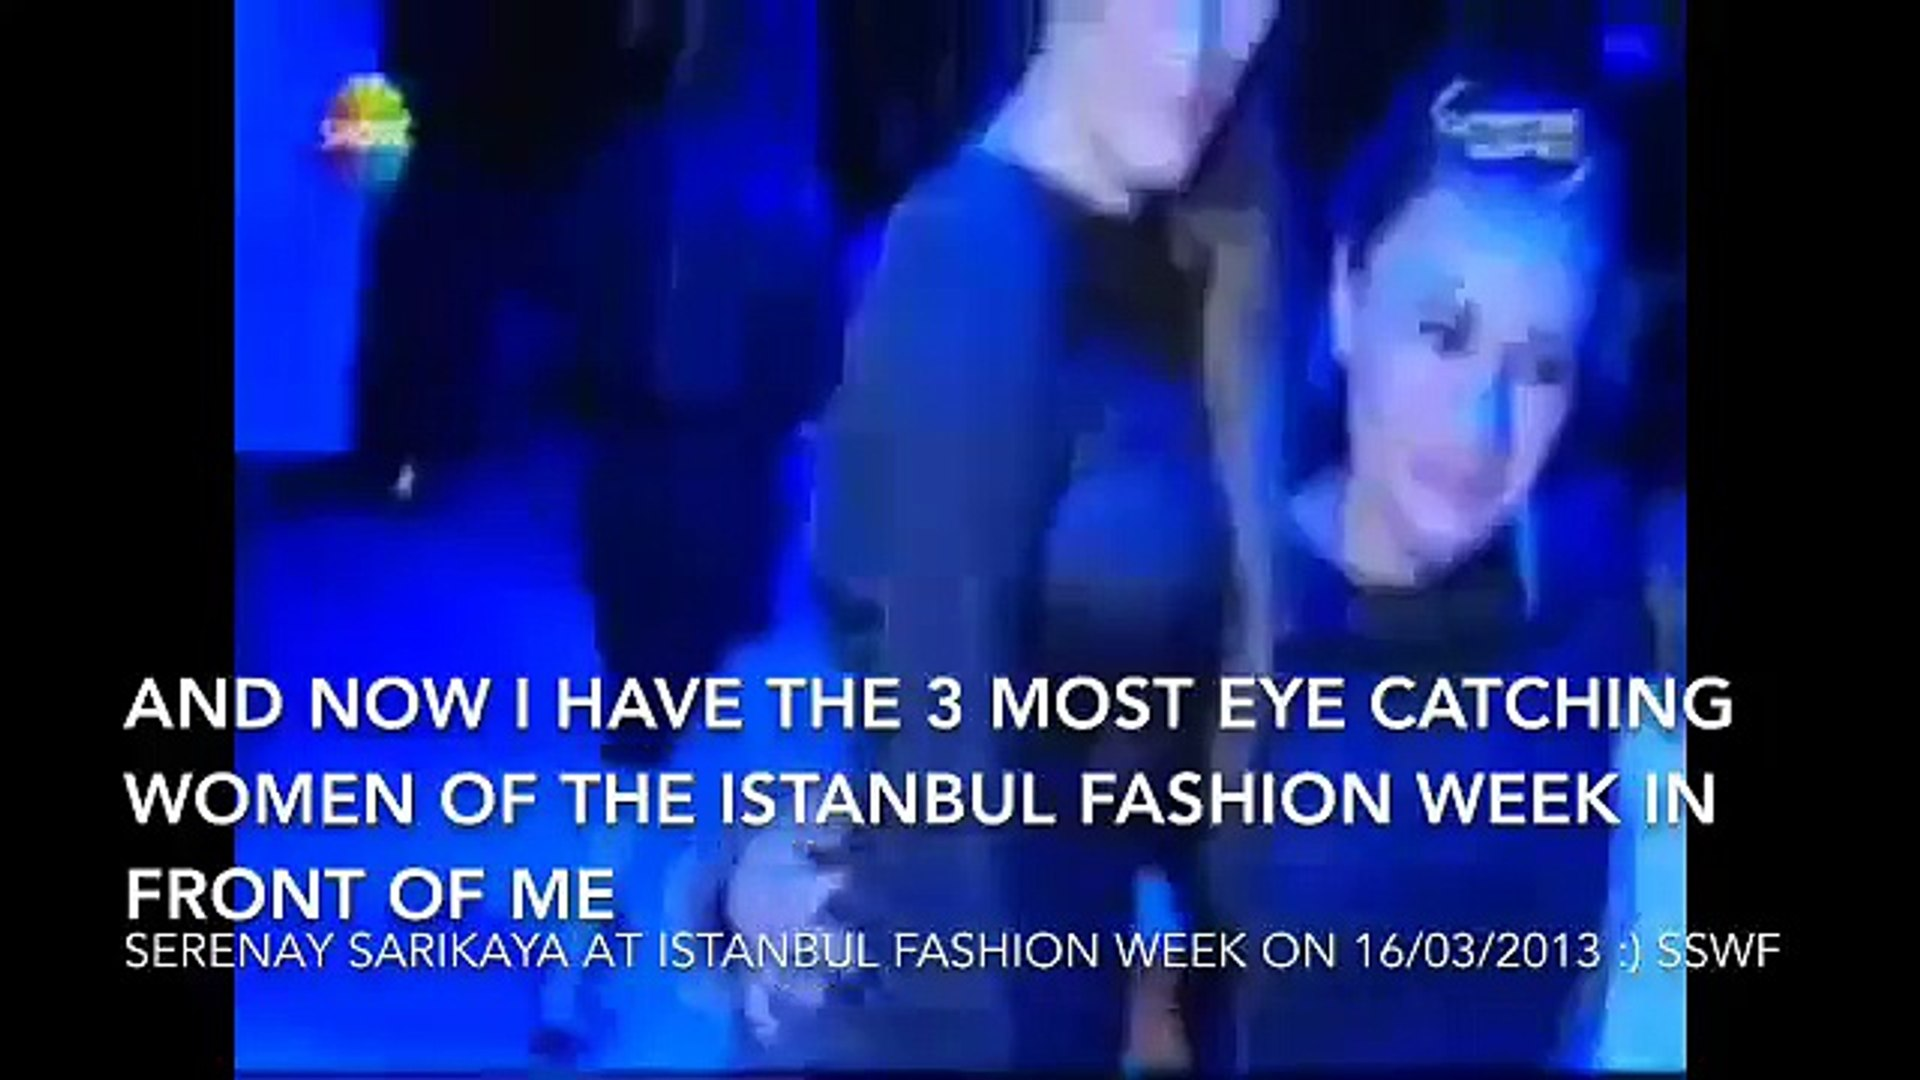 Serenay Sarikaya at Istanbul Fashion week 2013 with eng subtitles